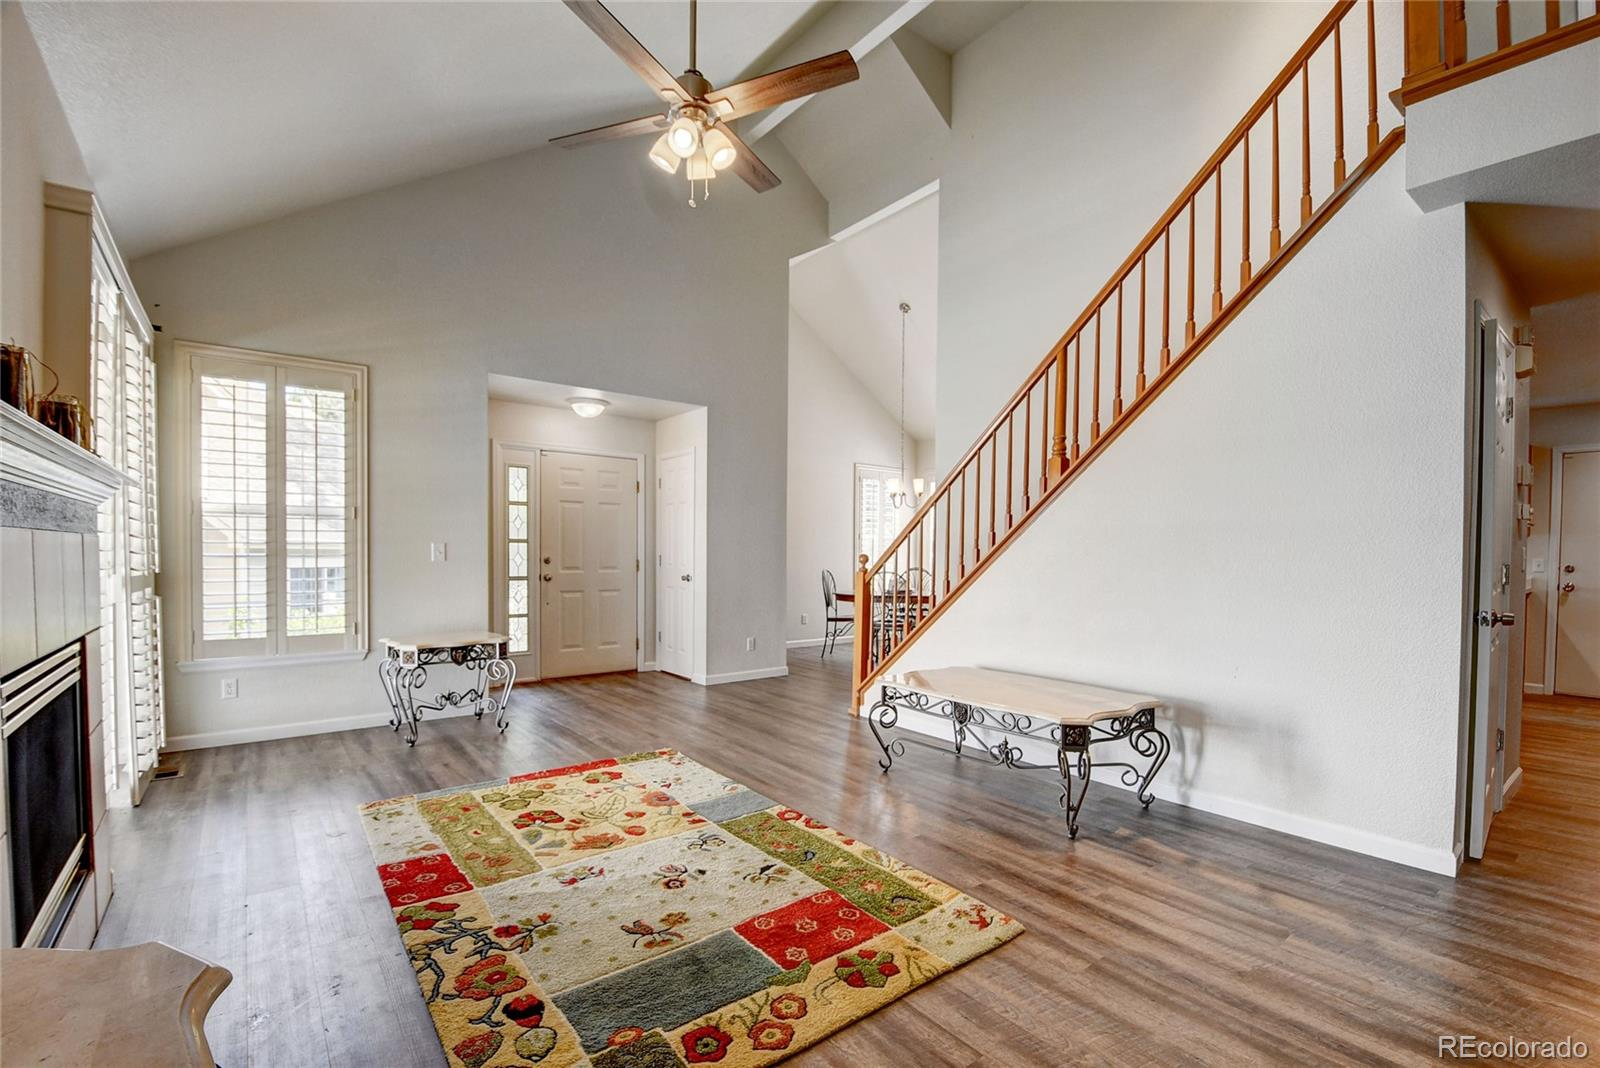 This nicely updated 3 bed/3 bath townhouse is a must see! As you enter the living room you are greeted with new floors, fresh paint, vaulted ceilings and tall windows that create a bright spacious, yet cozy atmosphere. The generously sized kitchen features an island and tons of cabinets and again, new flooring and paint! Head upstairs to the fabulous master suite that offers vaulted ceilings, an office/nursery, and a 5-piece bathroom. The finished basement boasts a family room, full bathroom, and spacious bedroom. Enjoy the convenience of the two car attached garage! Plantation shutters throughout home! Centrally located near Iliff Square that offers several opportunities for dining and shopping. Easy access to I-225 for a quick trip to DIA or downtown Denver!